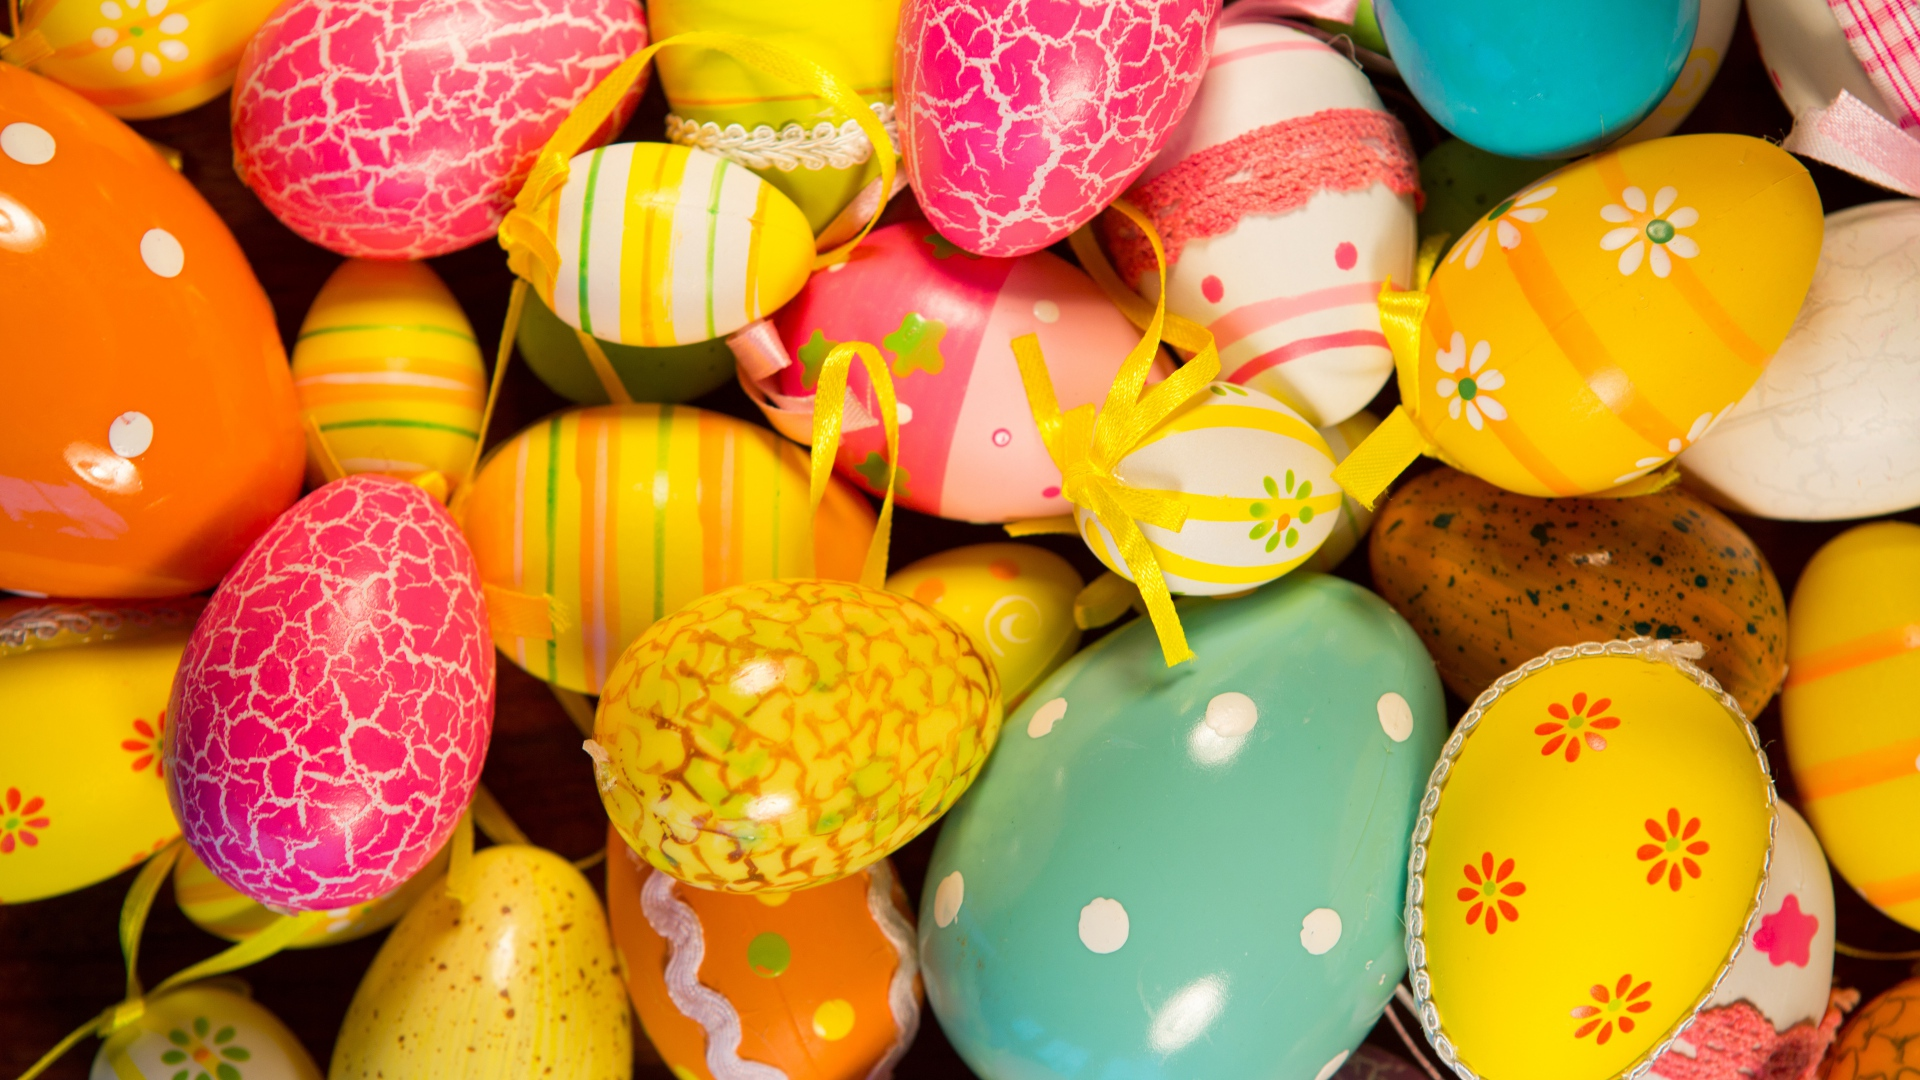 Happy Easter 2017 Eggs HD Wallpapers 9To5AnimationsCom 1920x1080